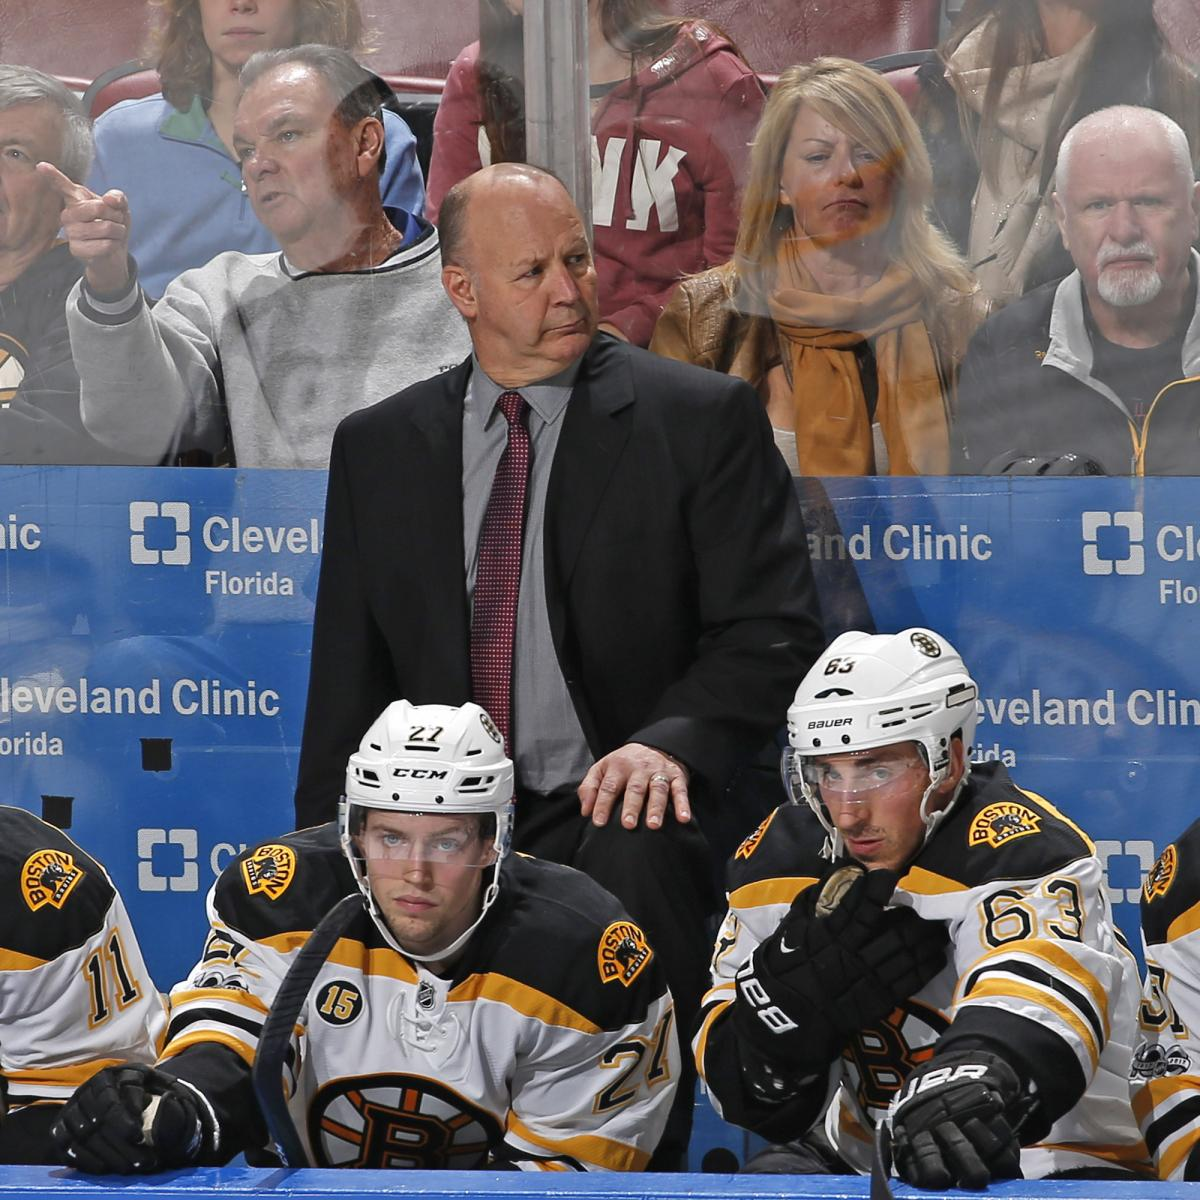 Claude Julien Fired By Bruins, Bruce Cassidy Named Interim